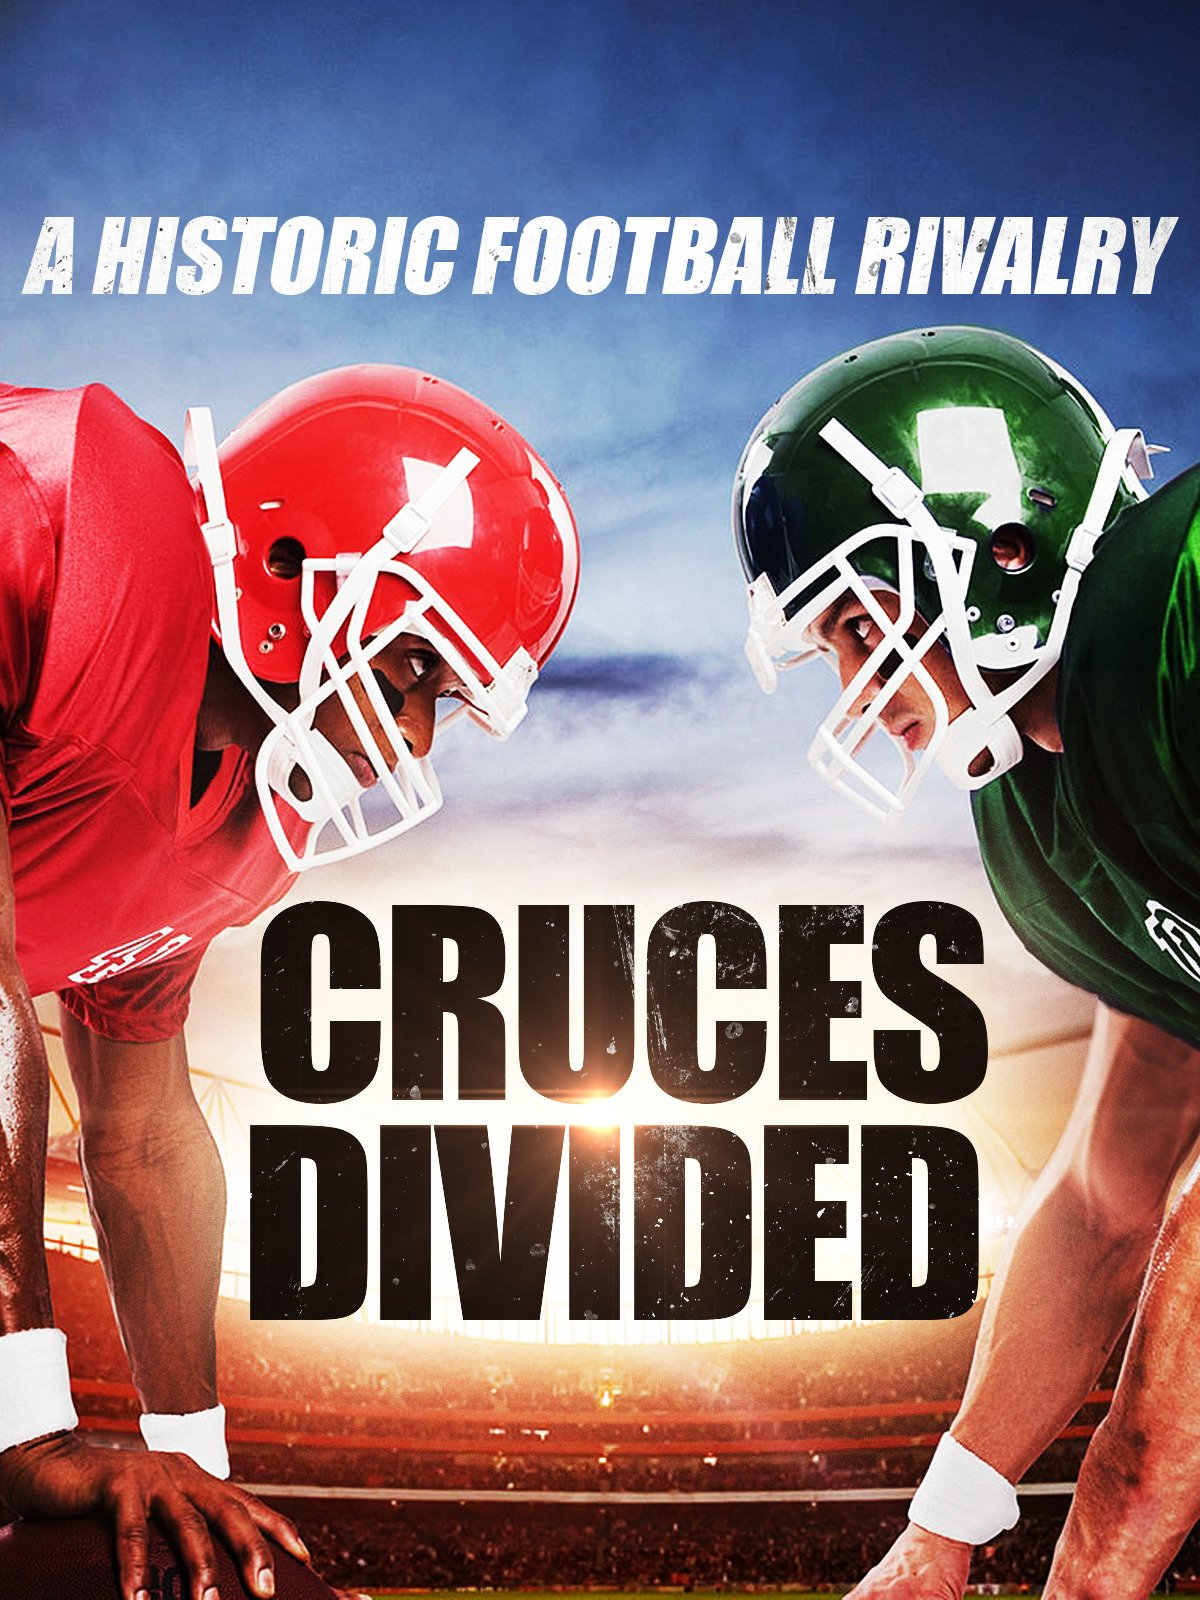 Cruces Divided